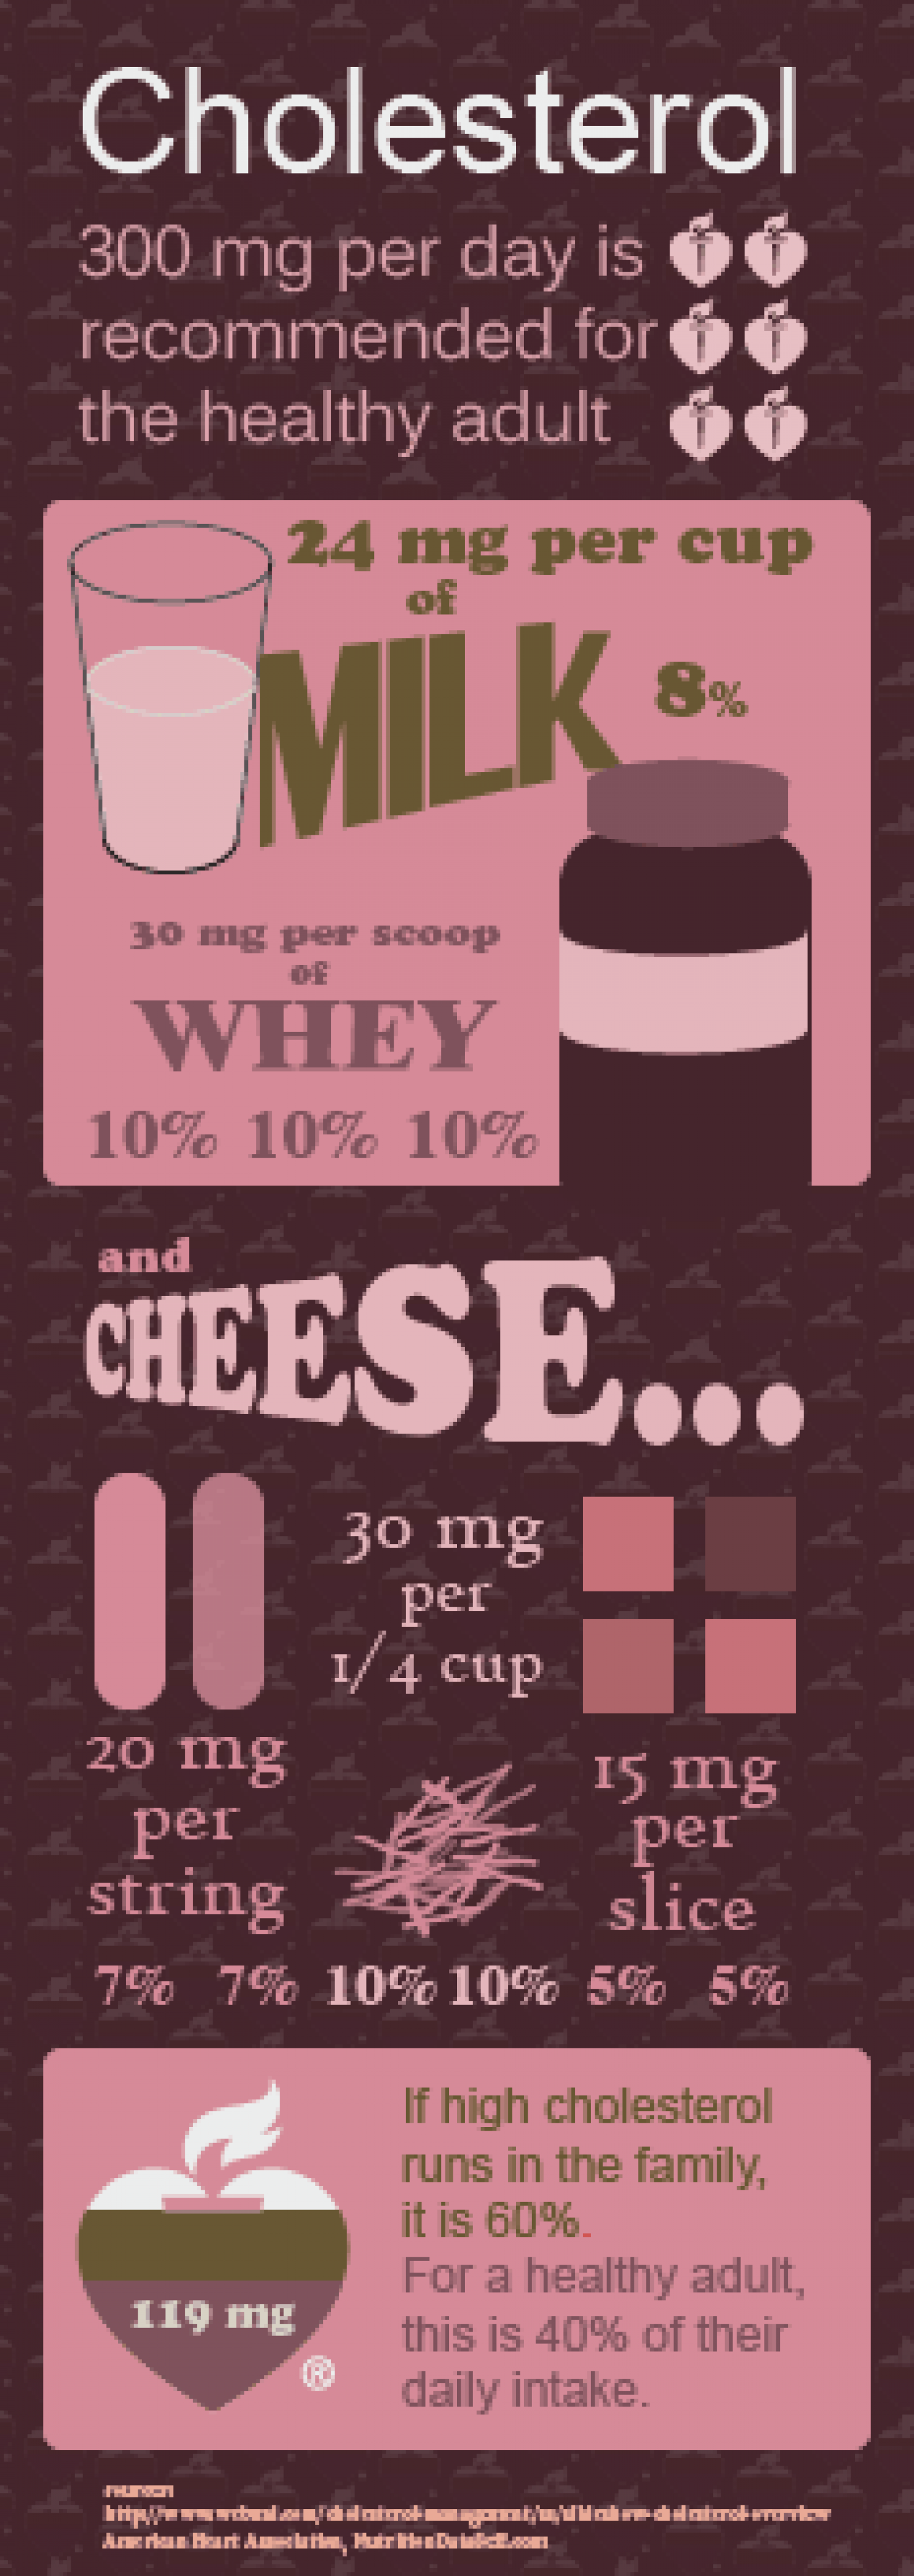 Cholesterol and Dairy Products Infographic